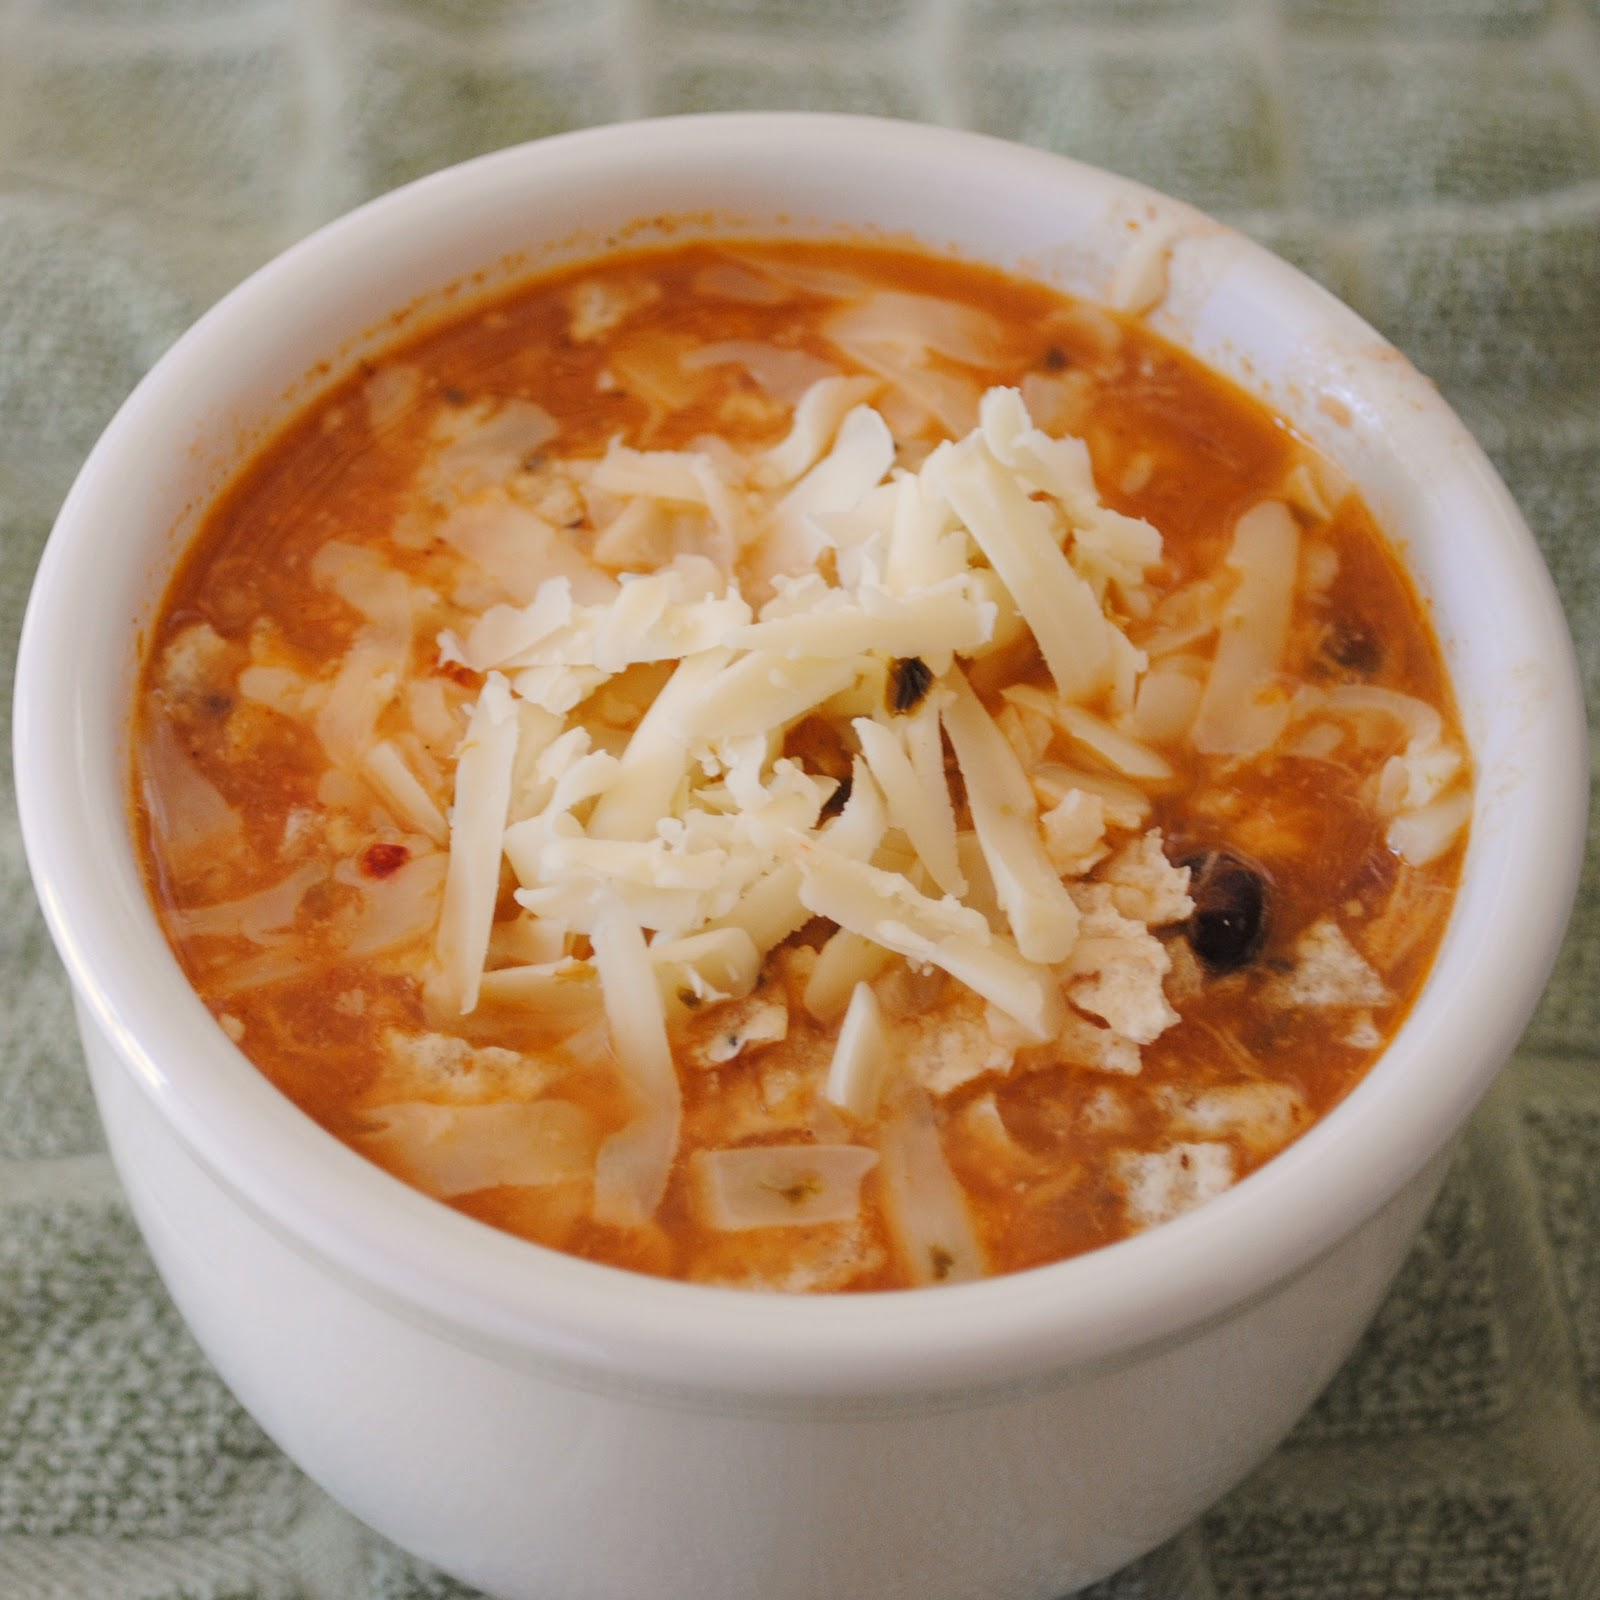 chicken enchilada soup mmm this chicken enchilada soup looks amazing ...